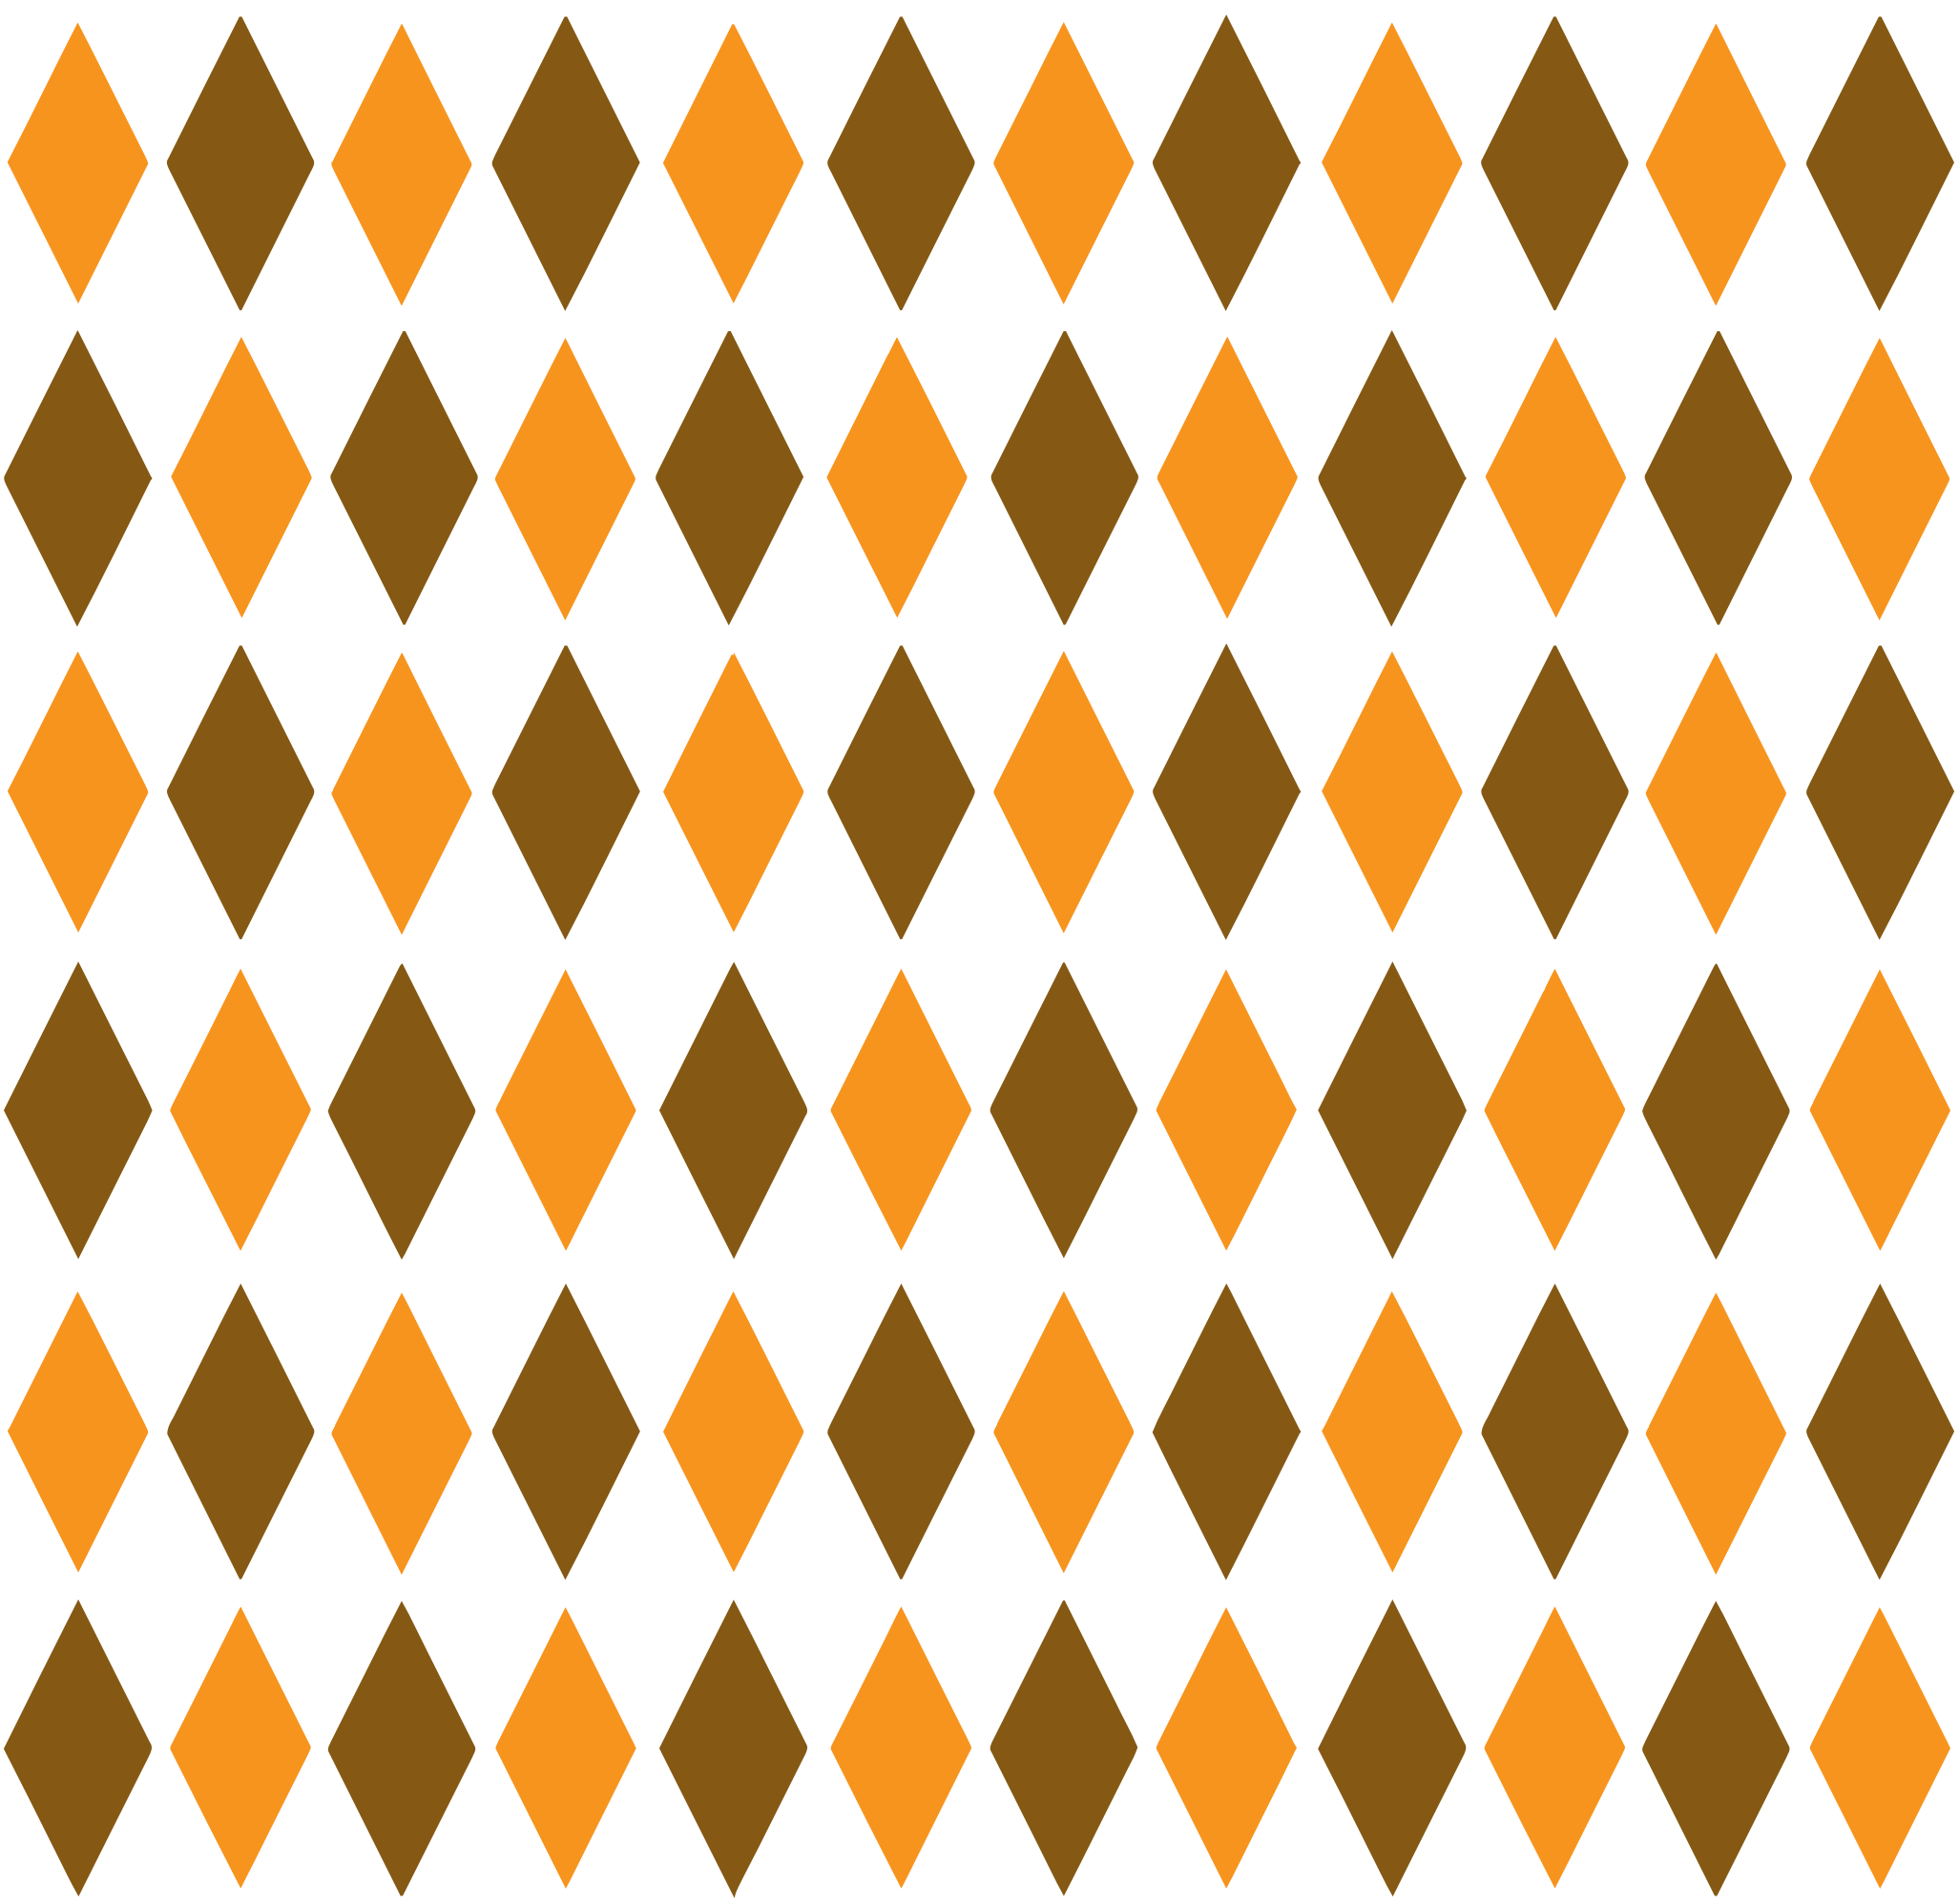 Brown & Orange Retro Diamond Pattern 1 by TikiGiki